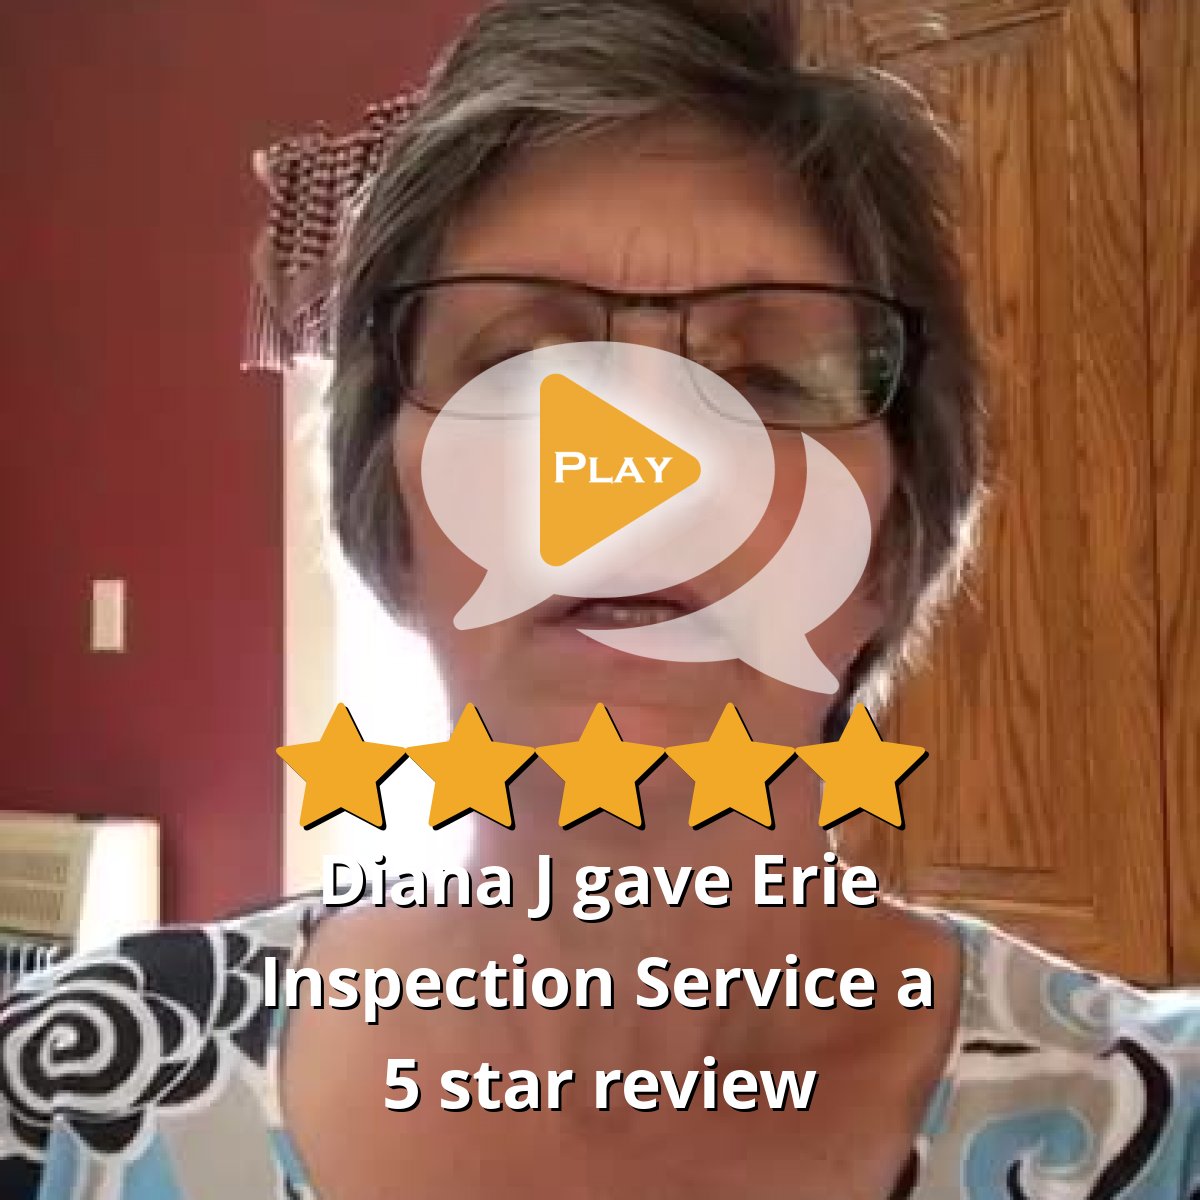 Diana J gave Erie Inspection Service a 5 star review